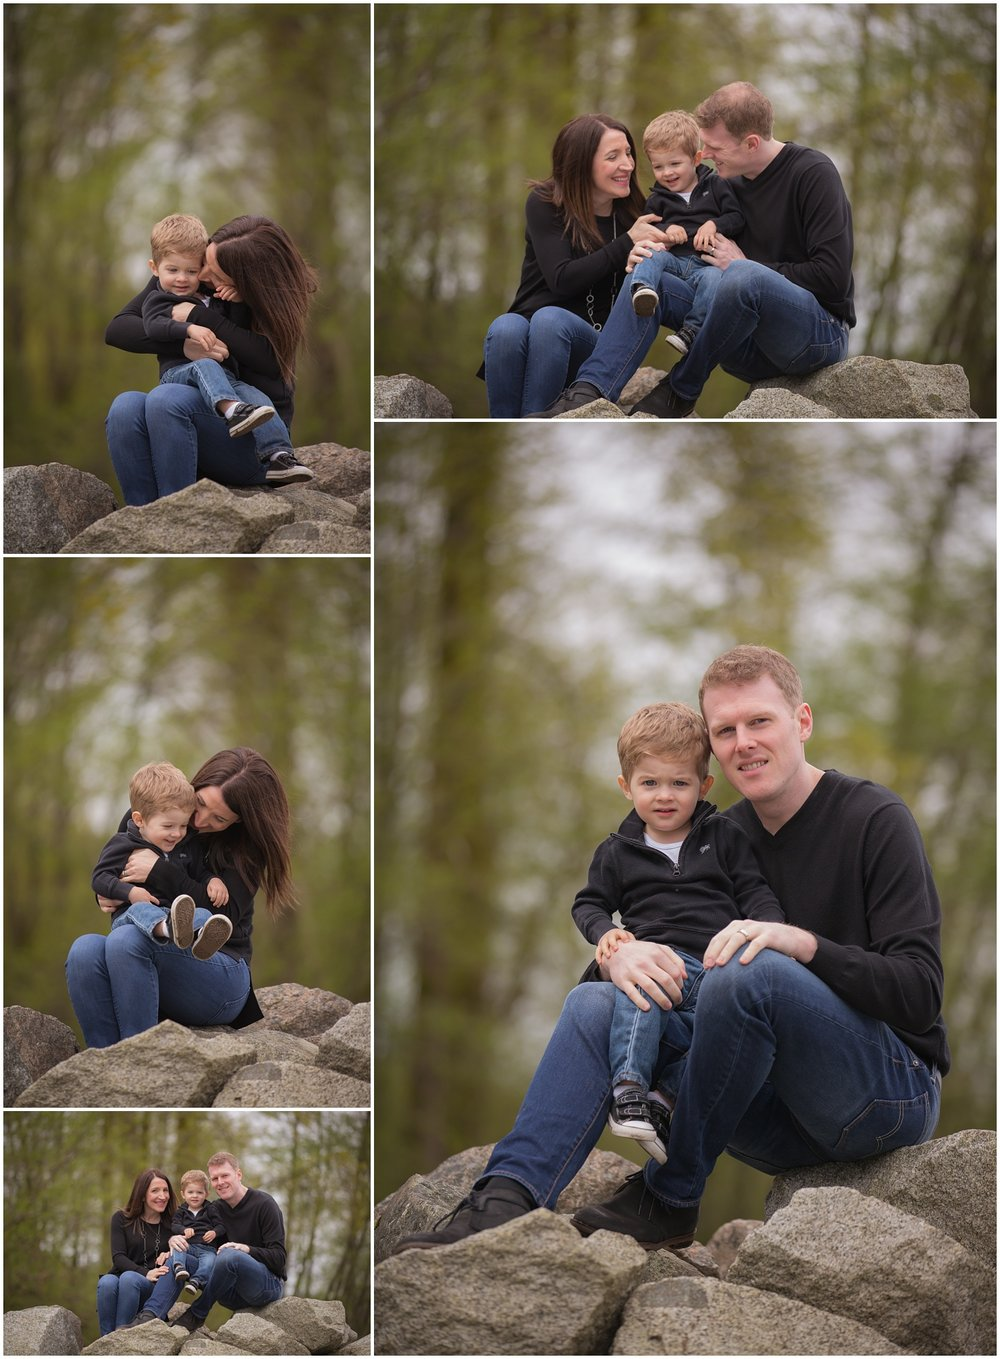 Amazing Day Photography - Barnet Marie Park Family Session - Burnaby Family Session - Burnaby Family Photographer (4).jpg